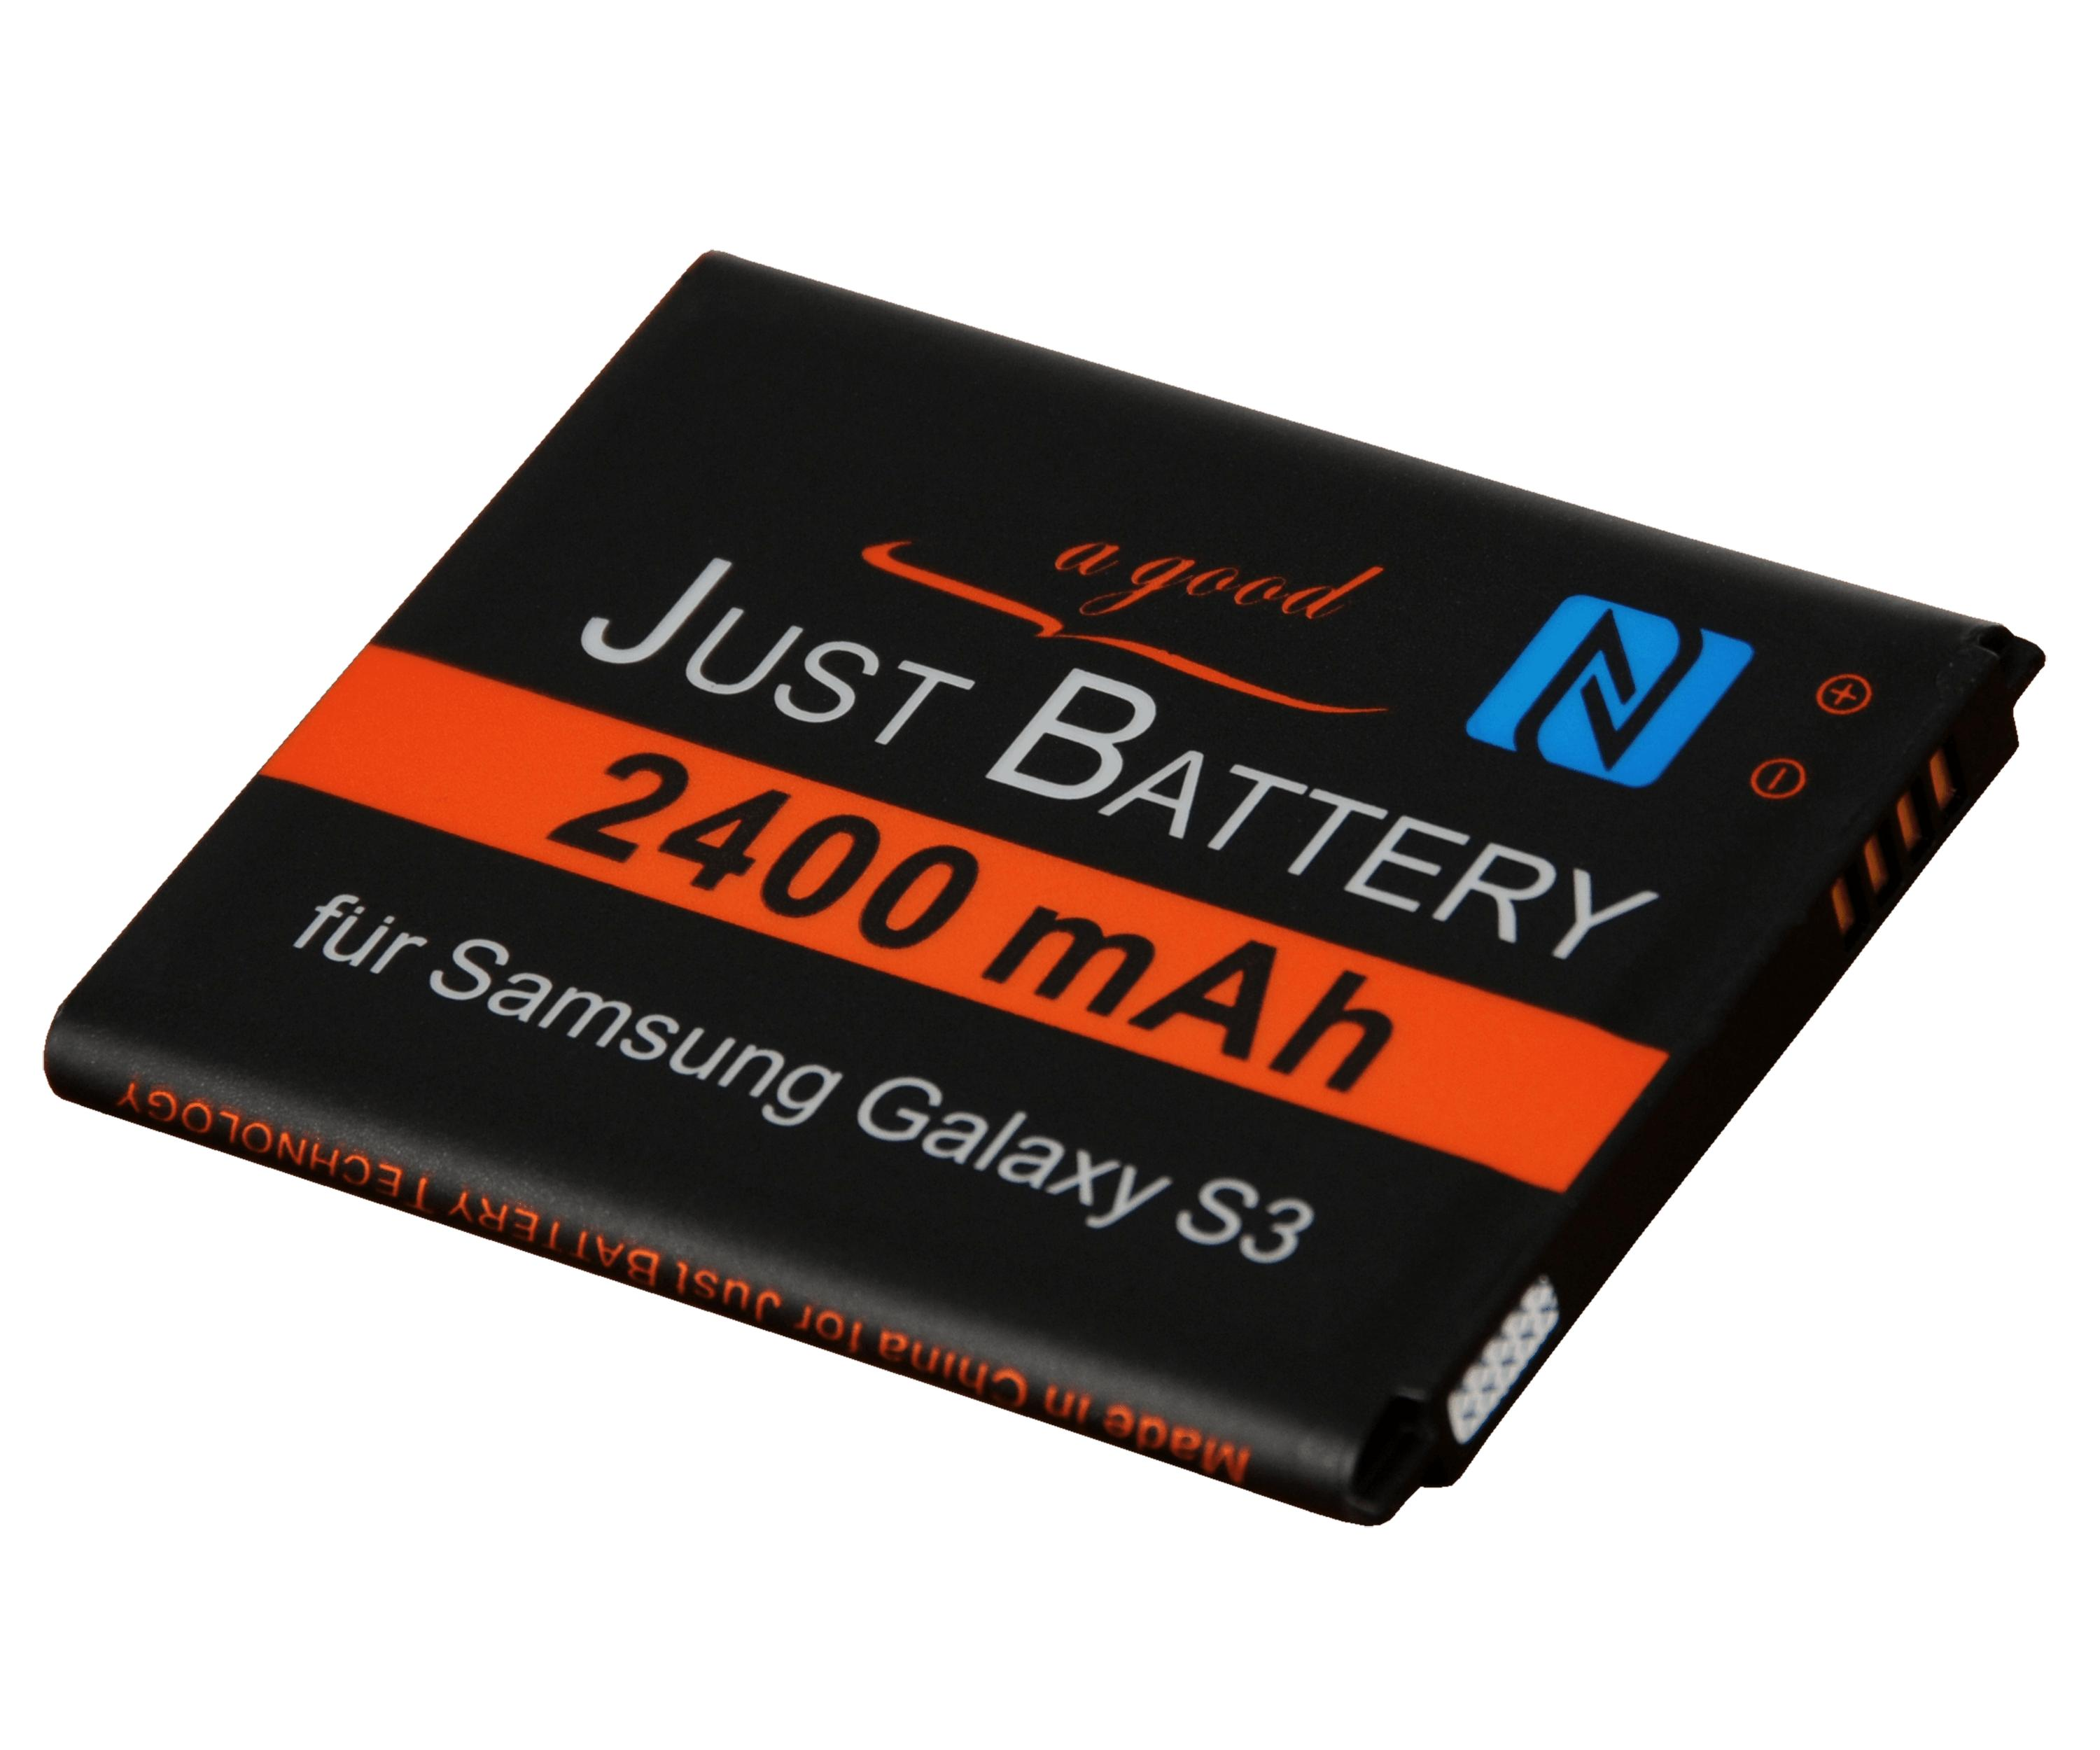 Battery for Samsung Galaxy S3 neo GT i9301 with NFC